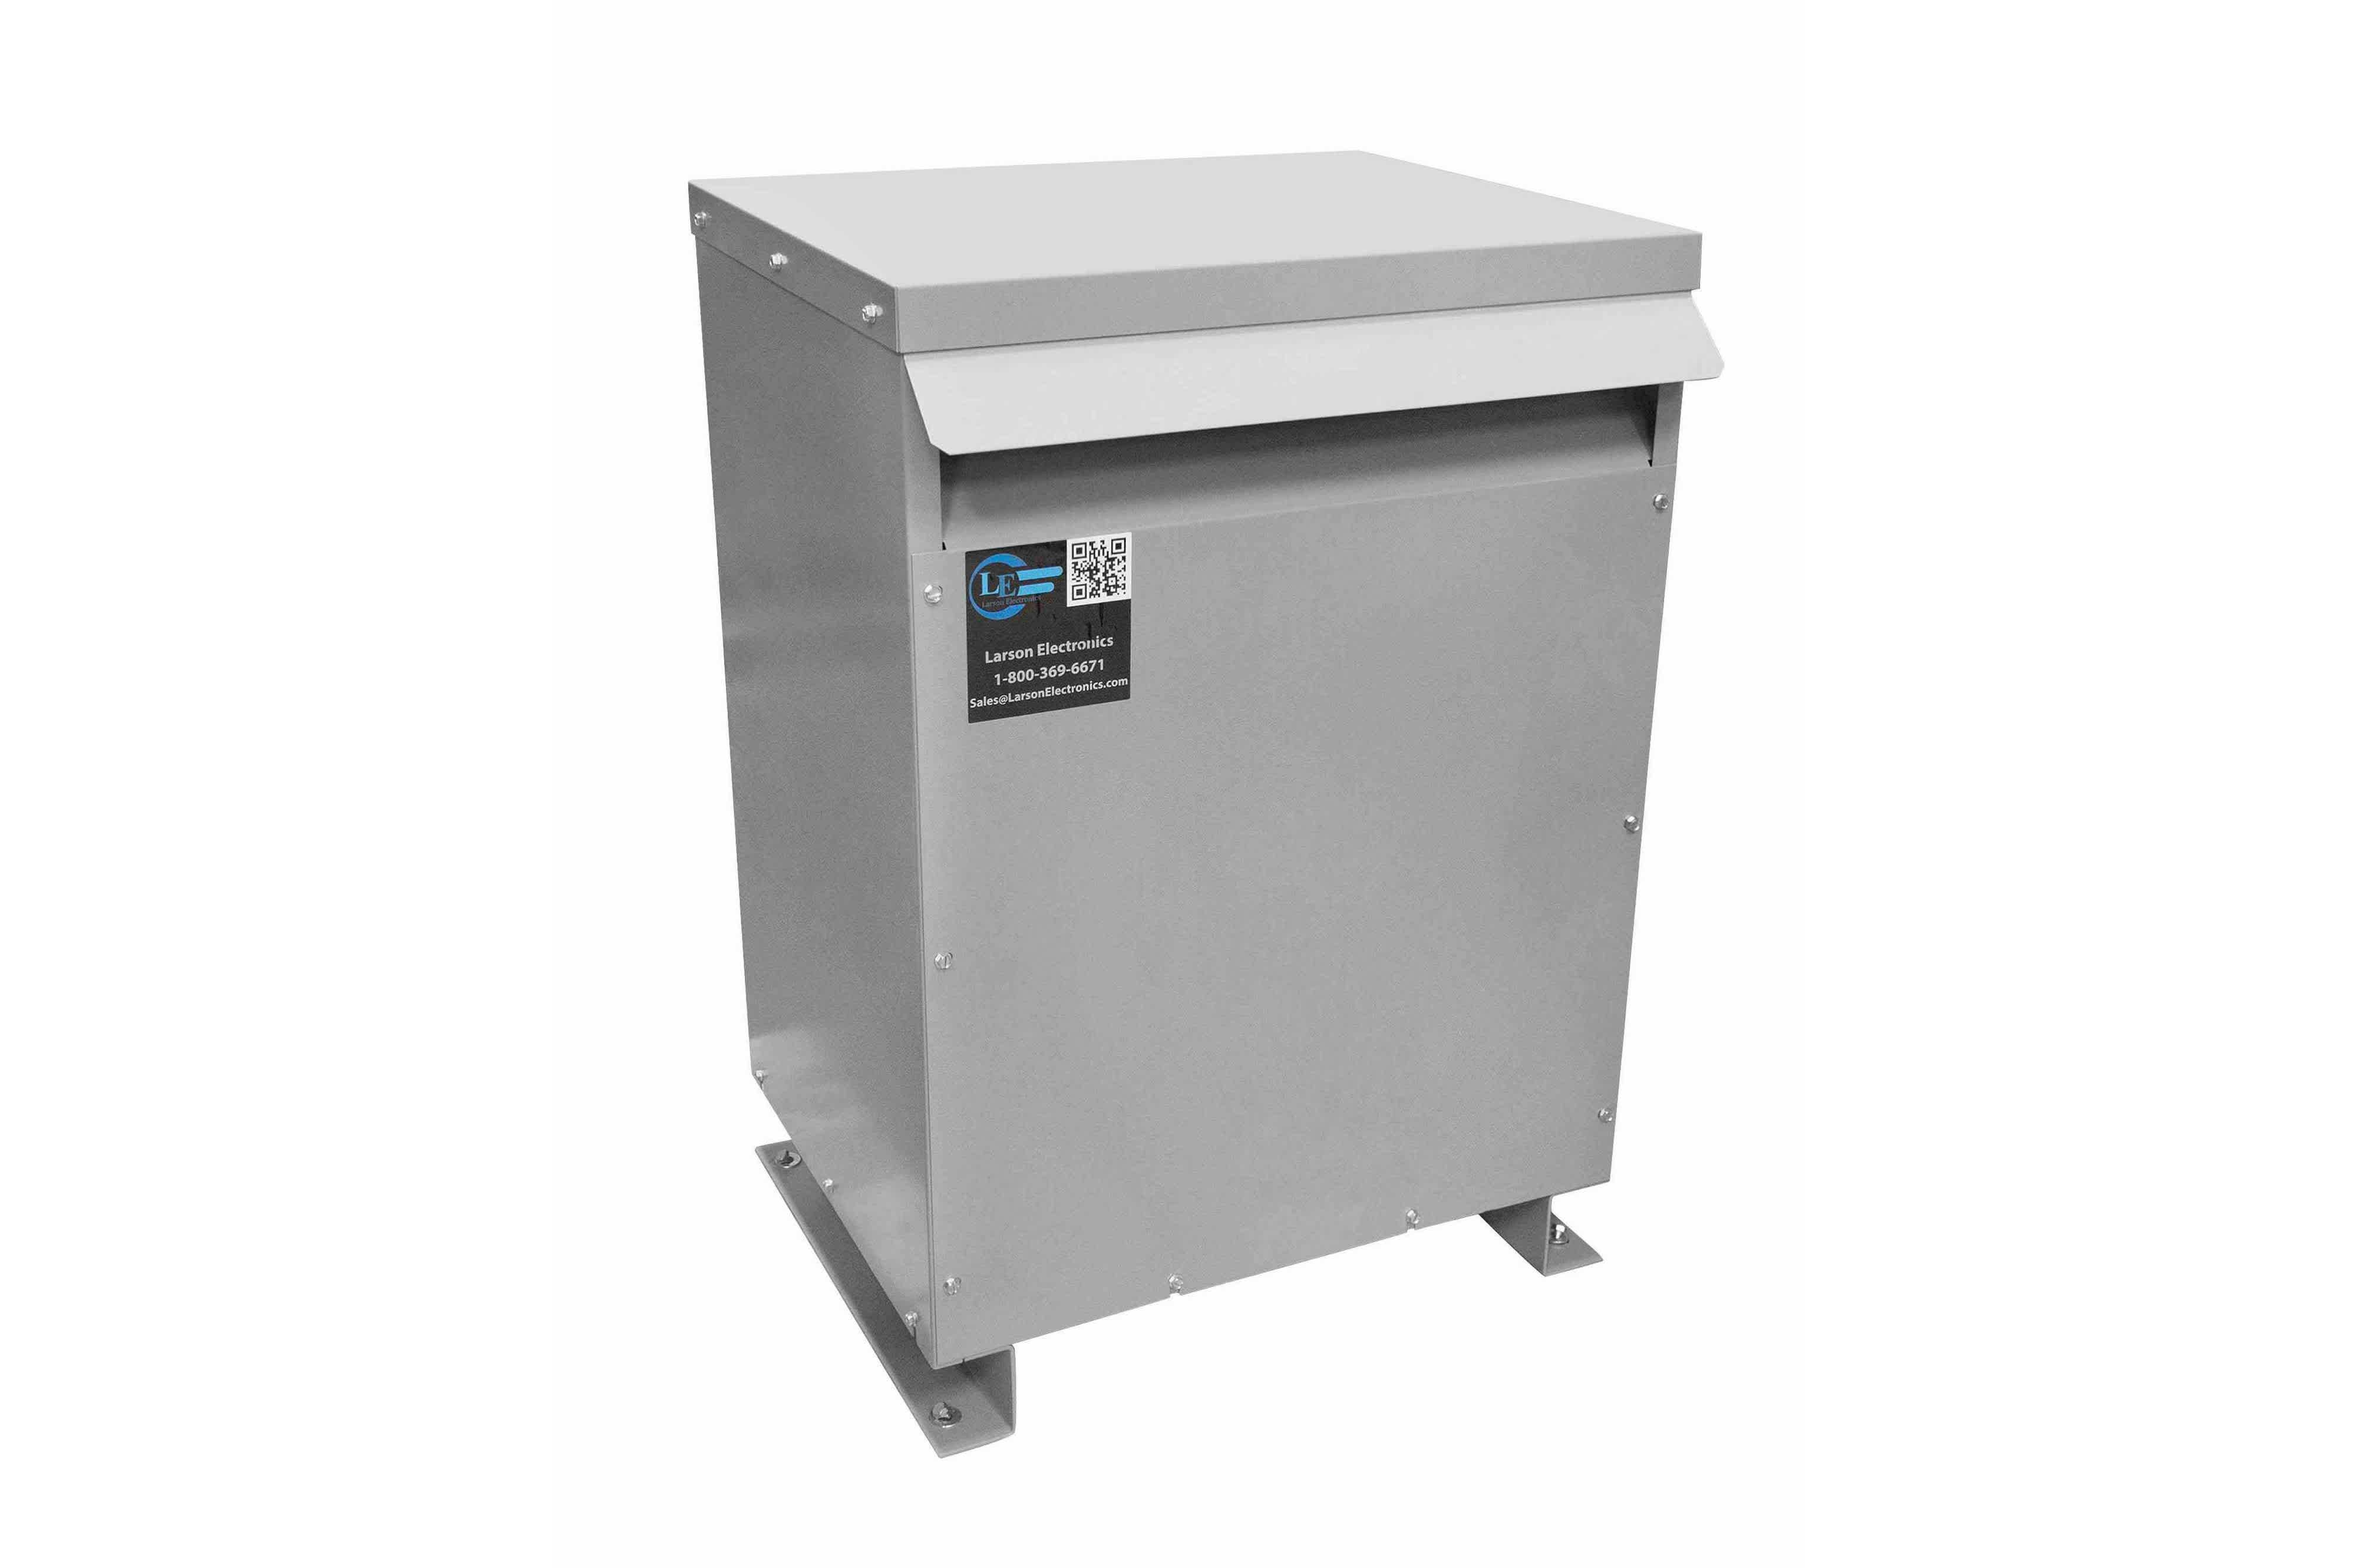 25 kVA 3PH Isolation Transformer, 575V Delta Primary, 380V Delta Secondary, N3R, Ventilated, 60 Hz